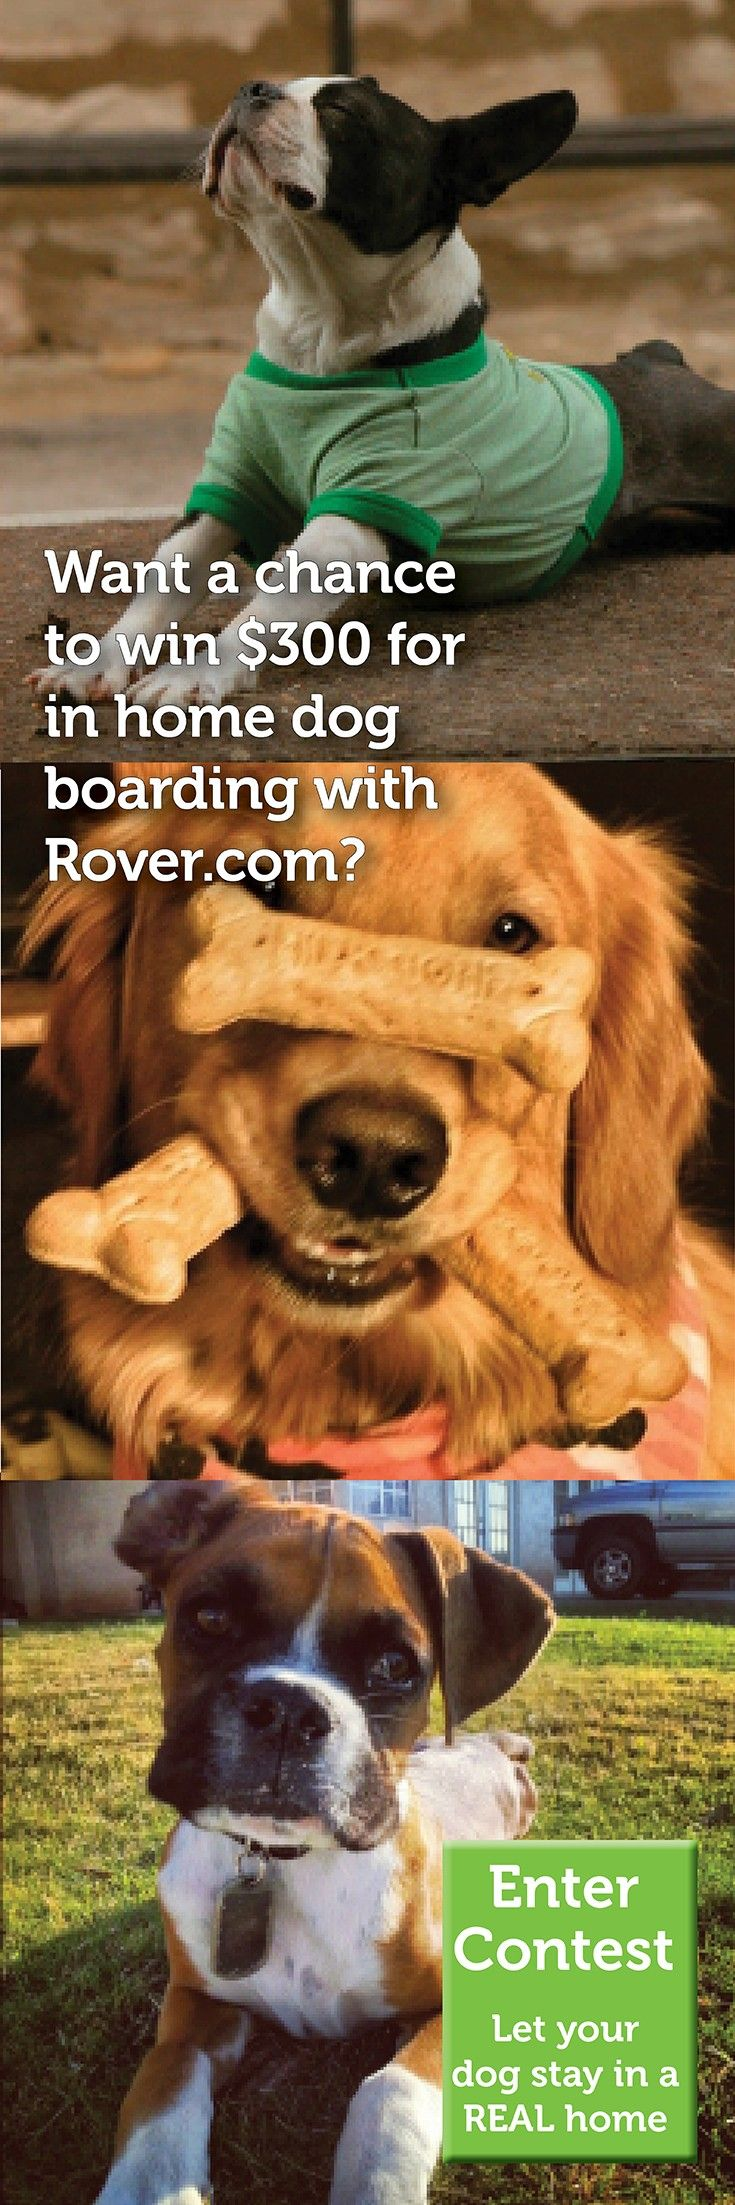 Want a chance to win $300 for in-home dog boarding with Rover.com?